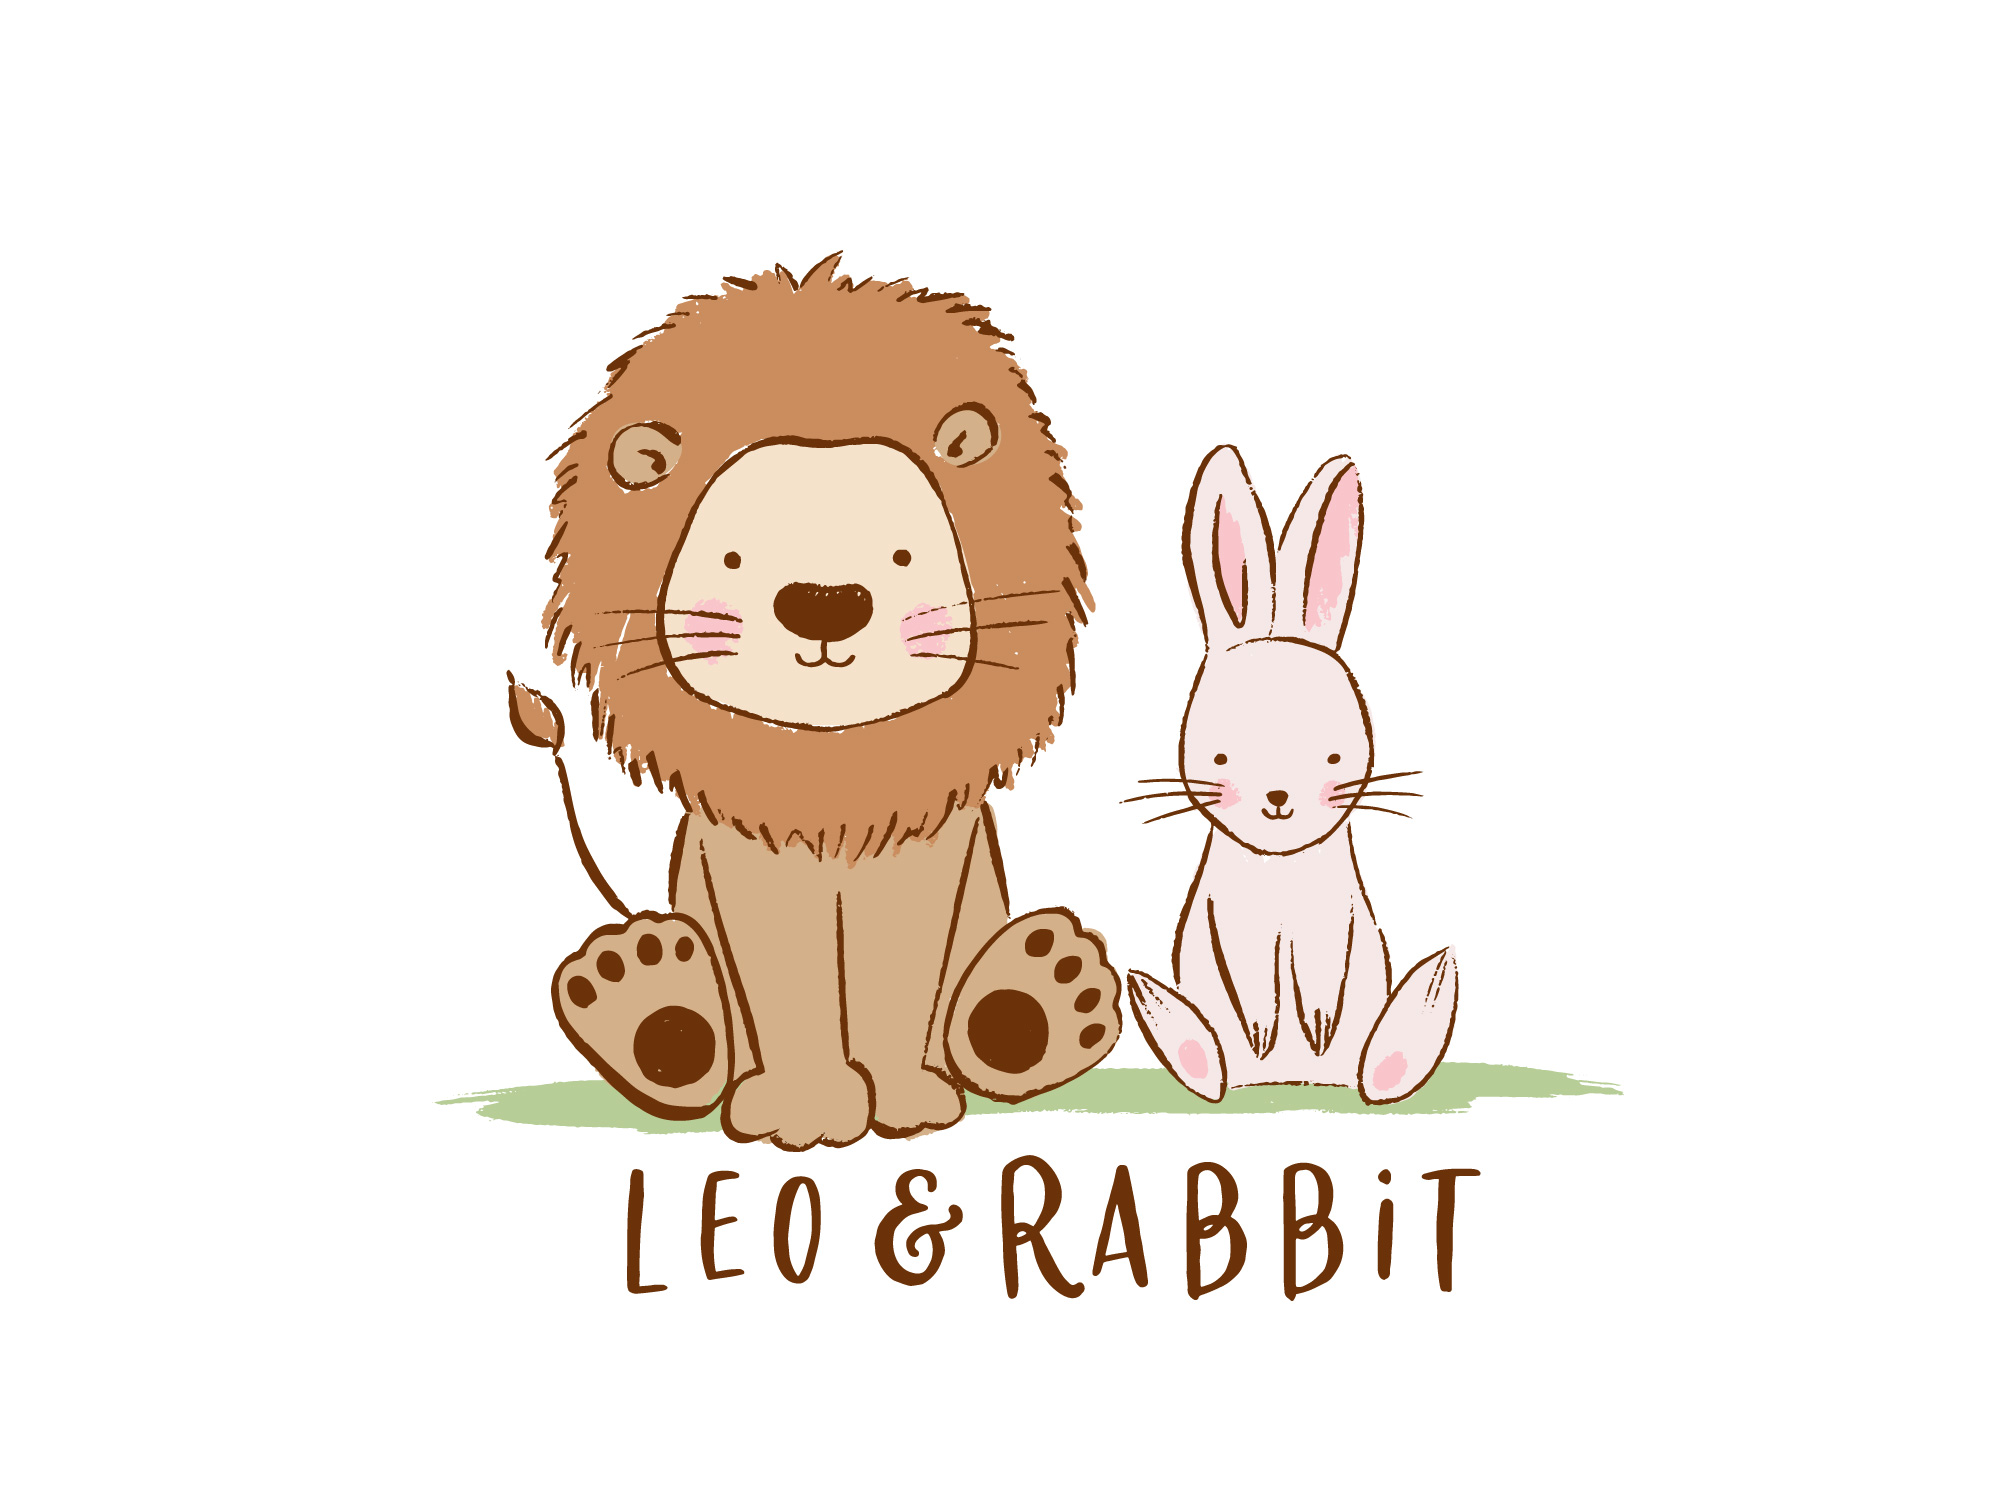 Leo & Rabbit logo illustration